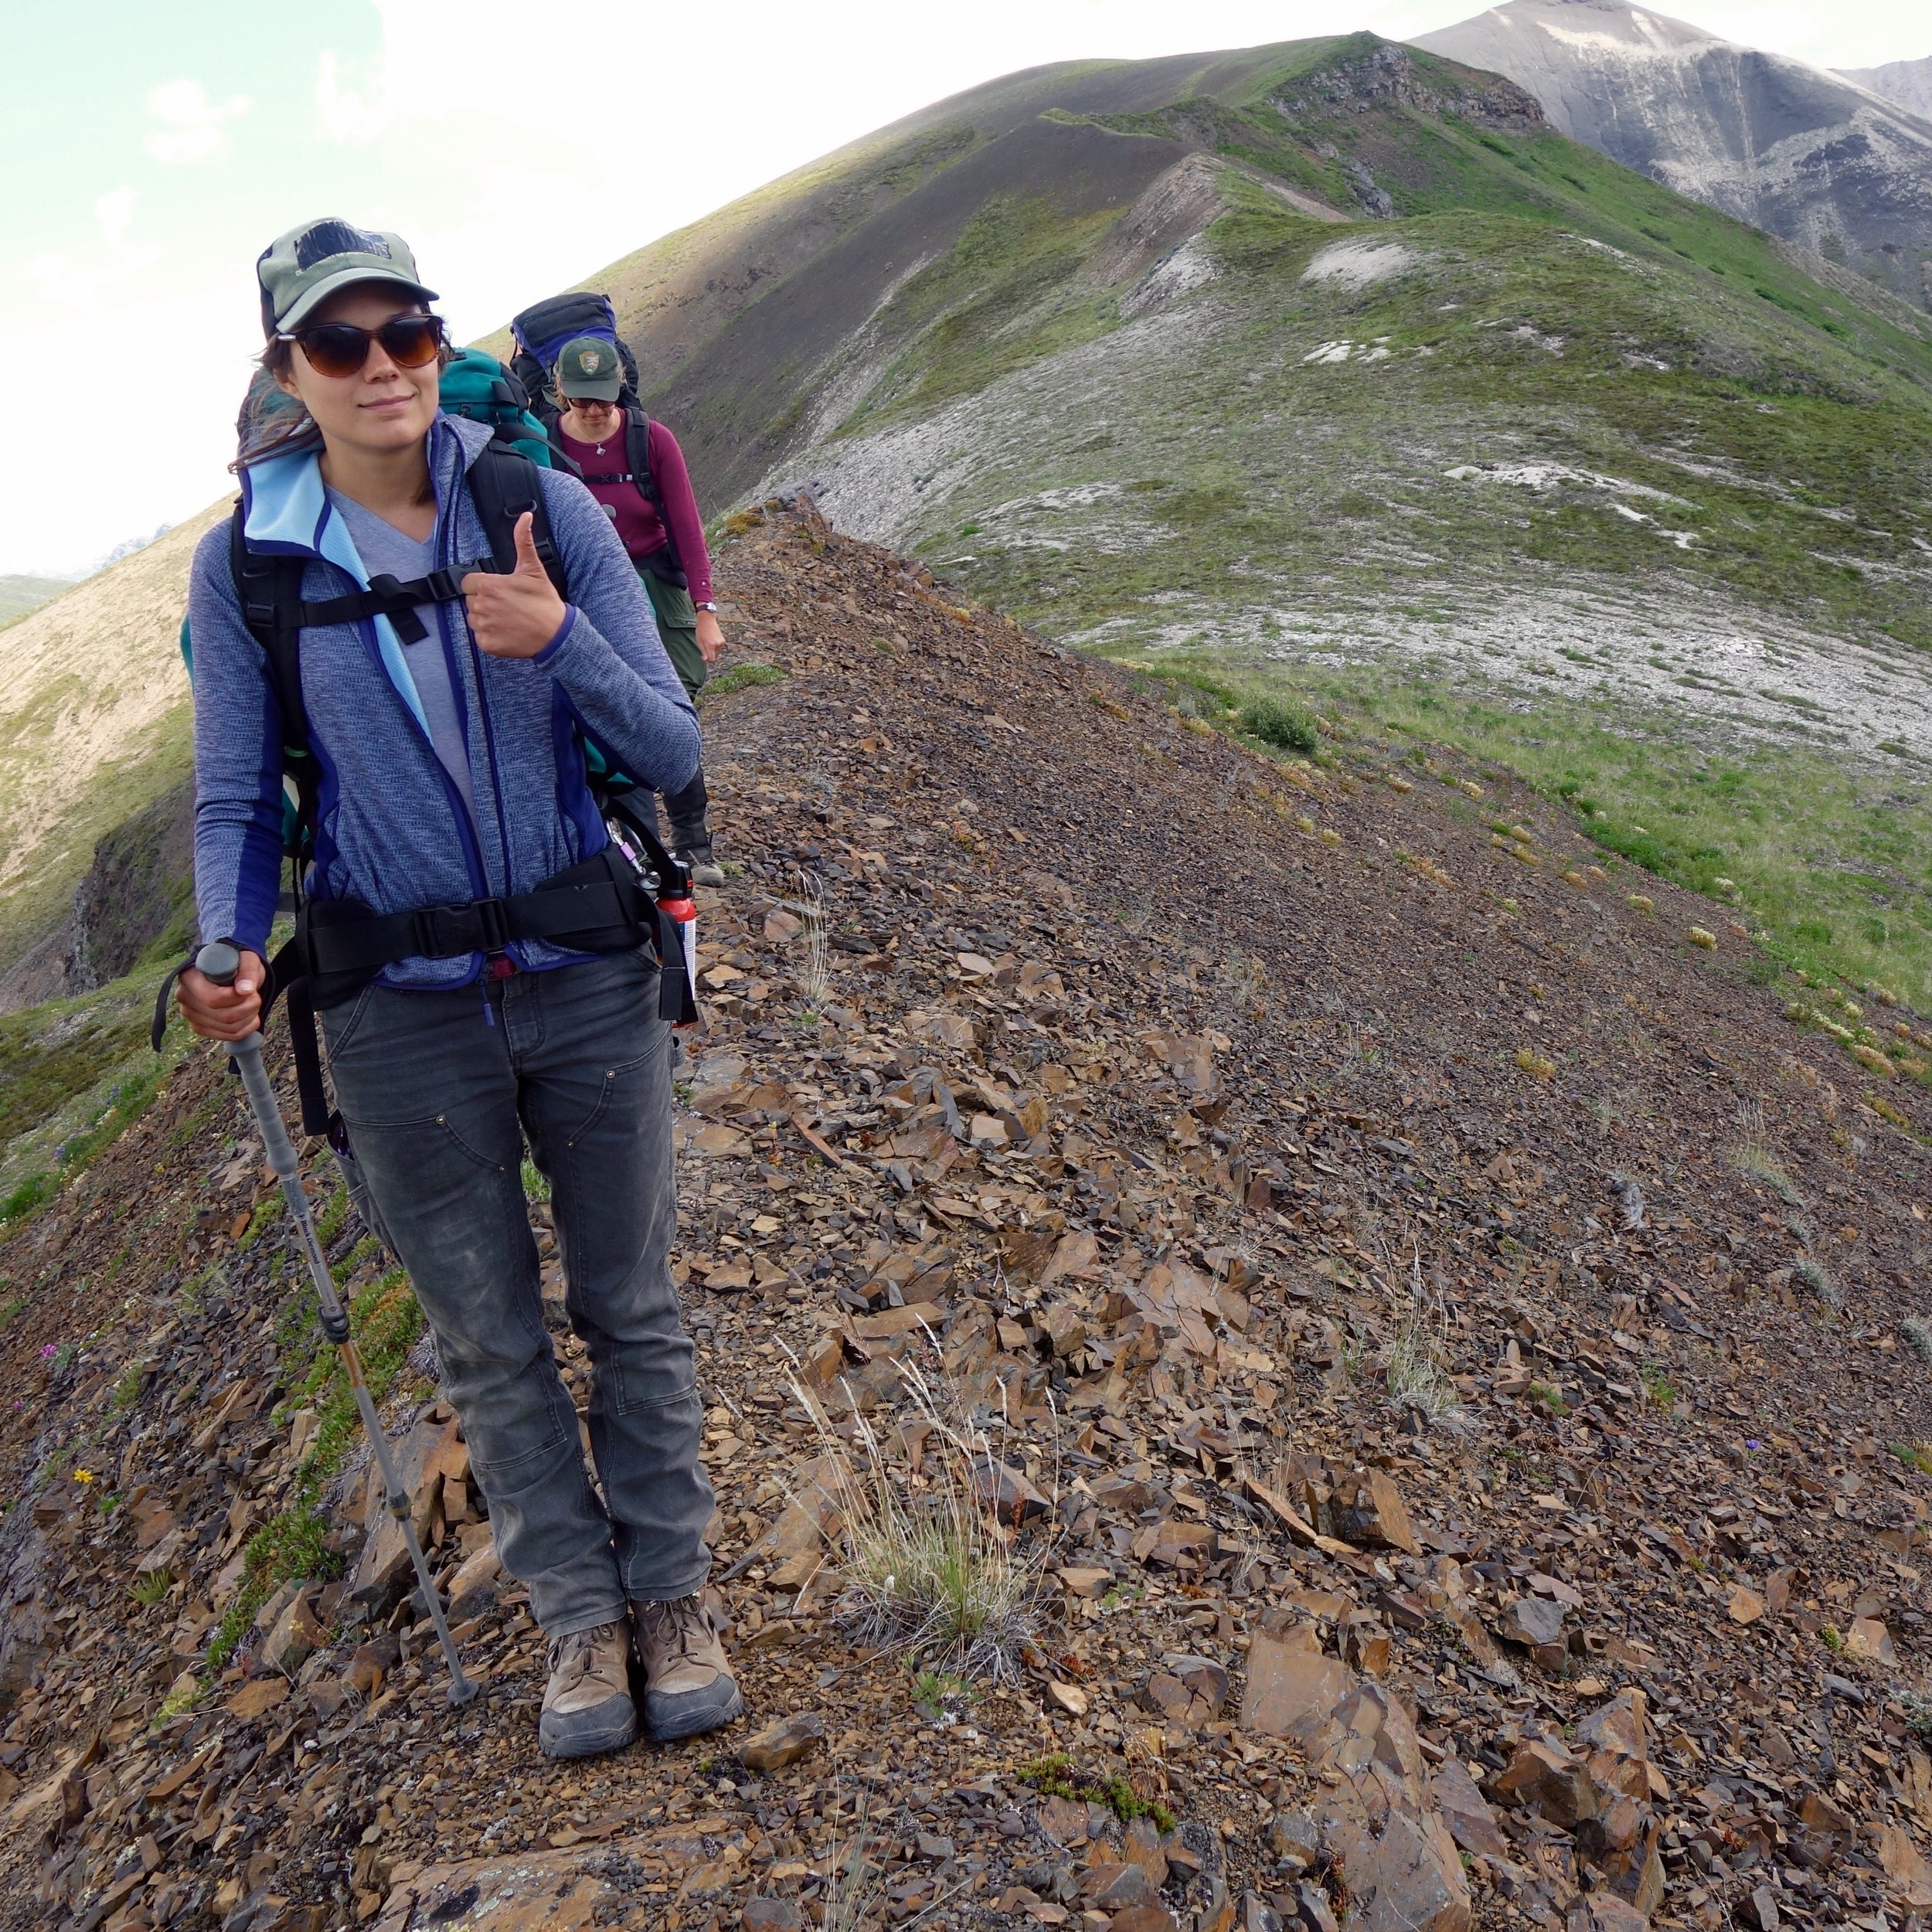 Backpacking looking for micranthes Wrangell st. elias National PArk, Alaska.